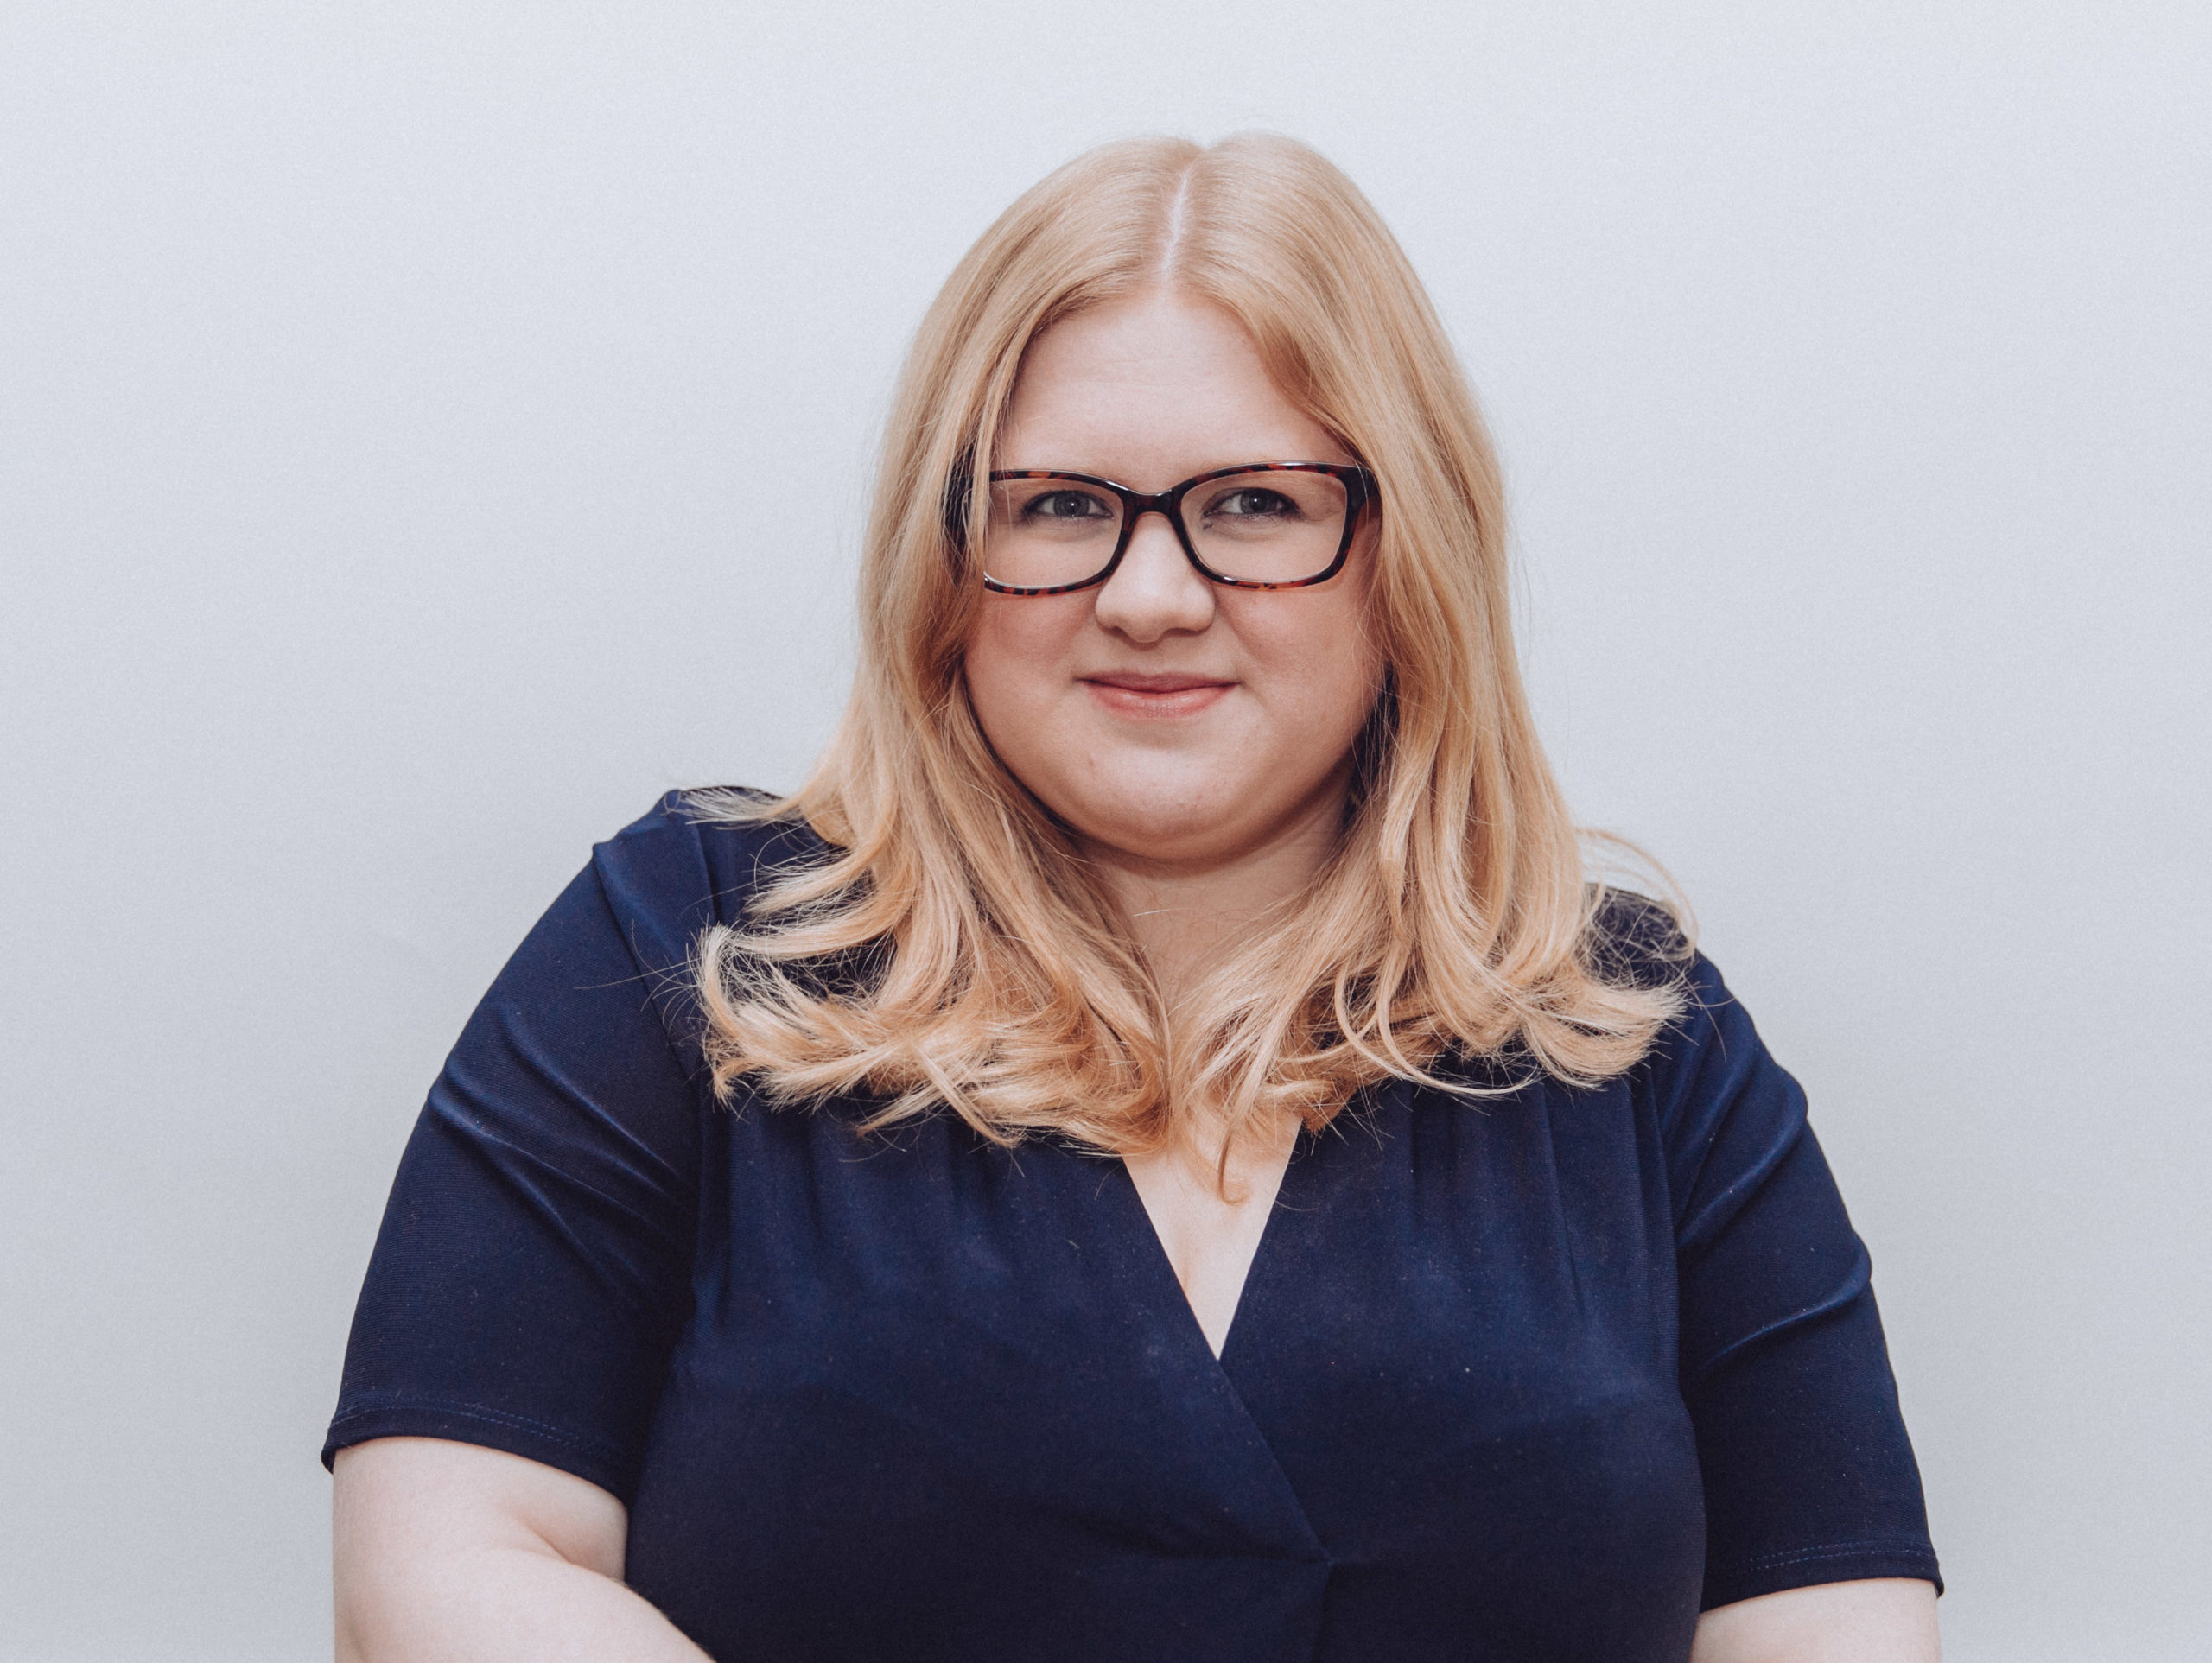 A headshot. Amy is a blonde white plus size woman wearing glasses. She is half smiling at the camera and wears a navy dress